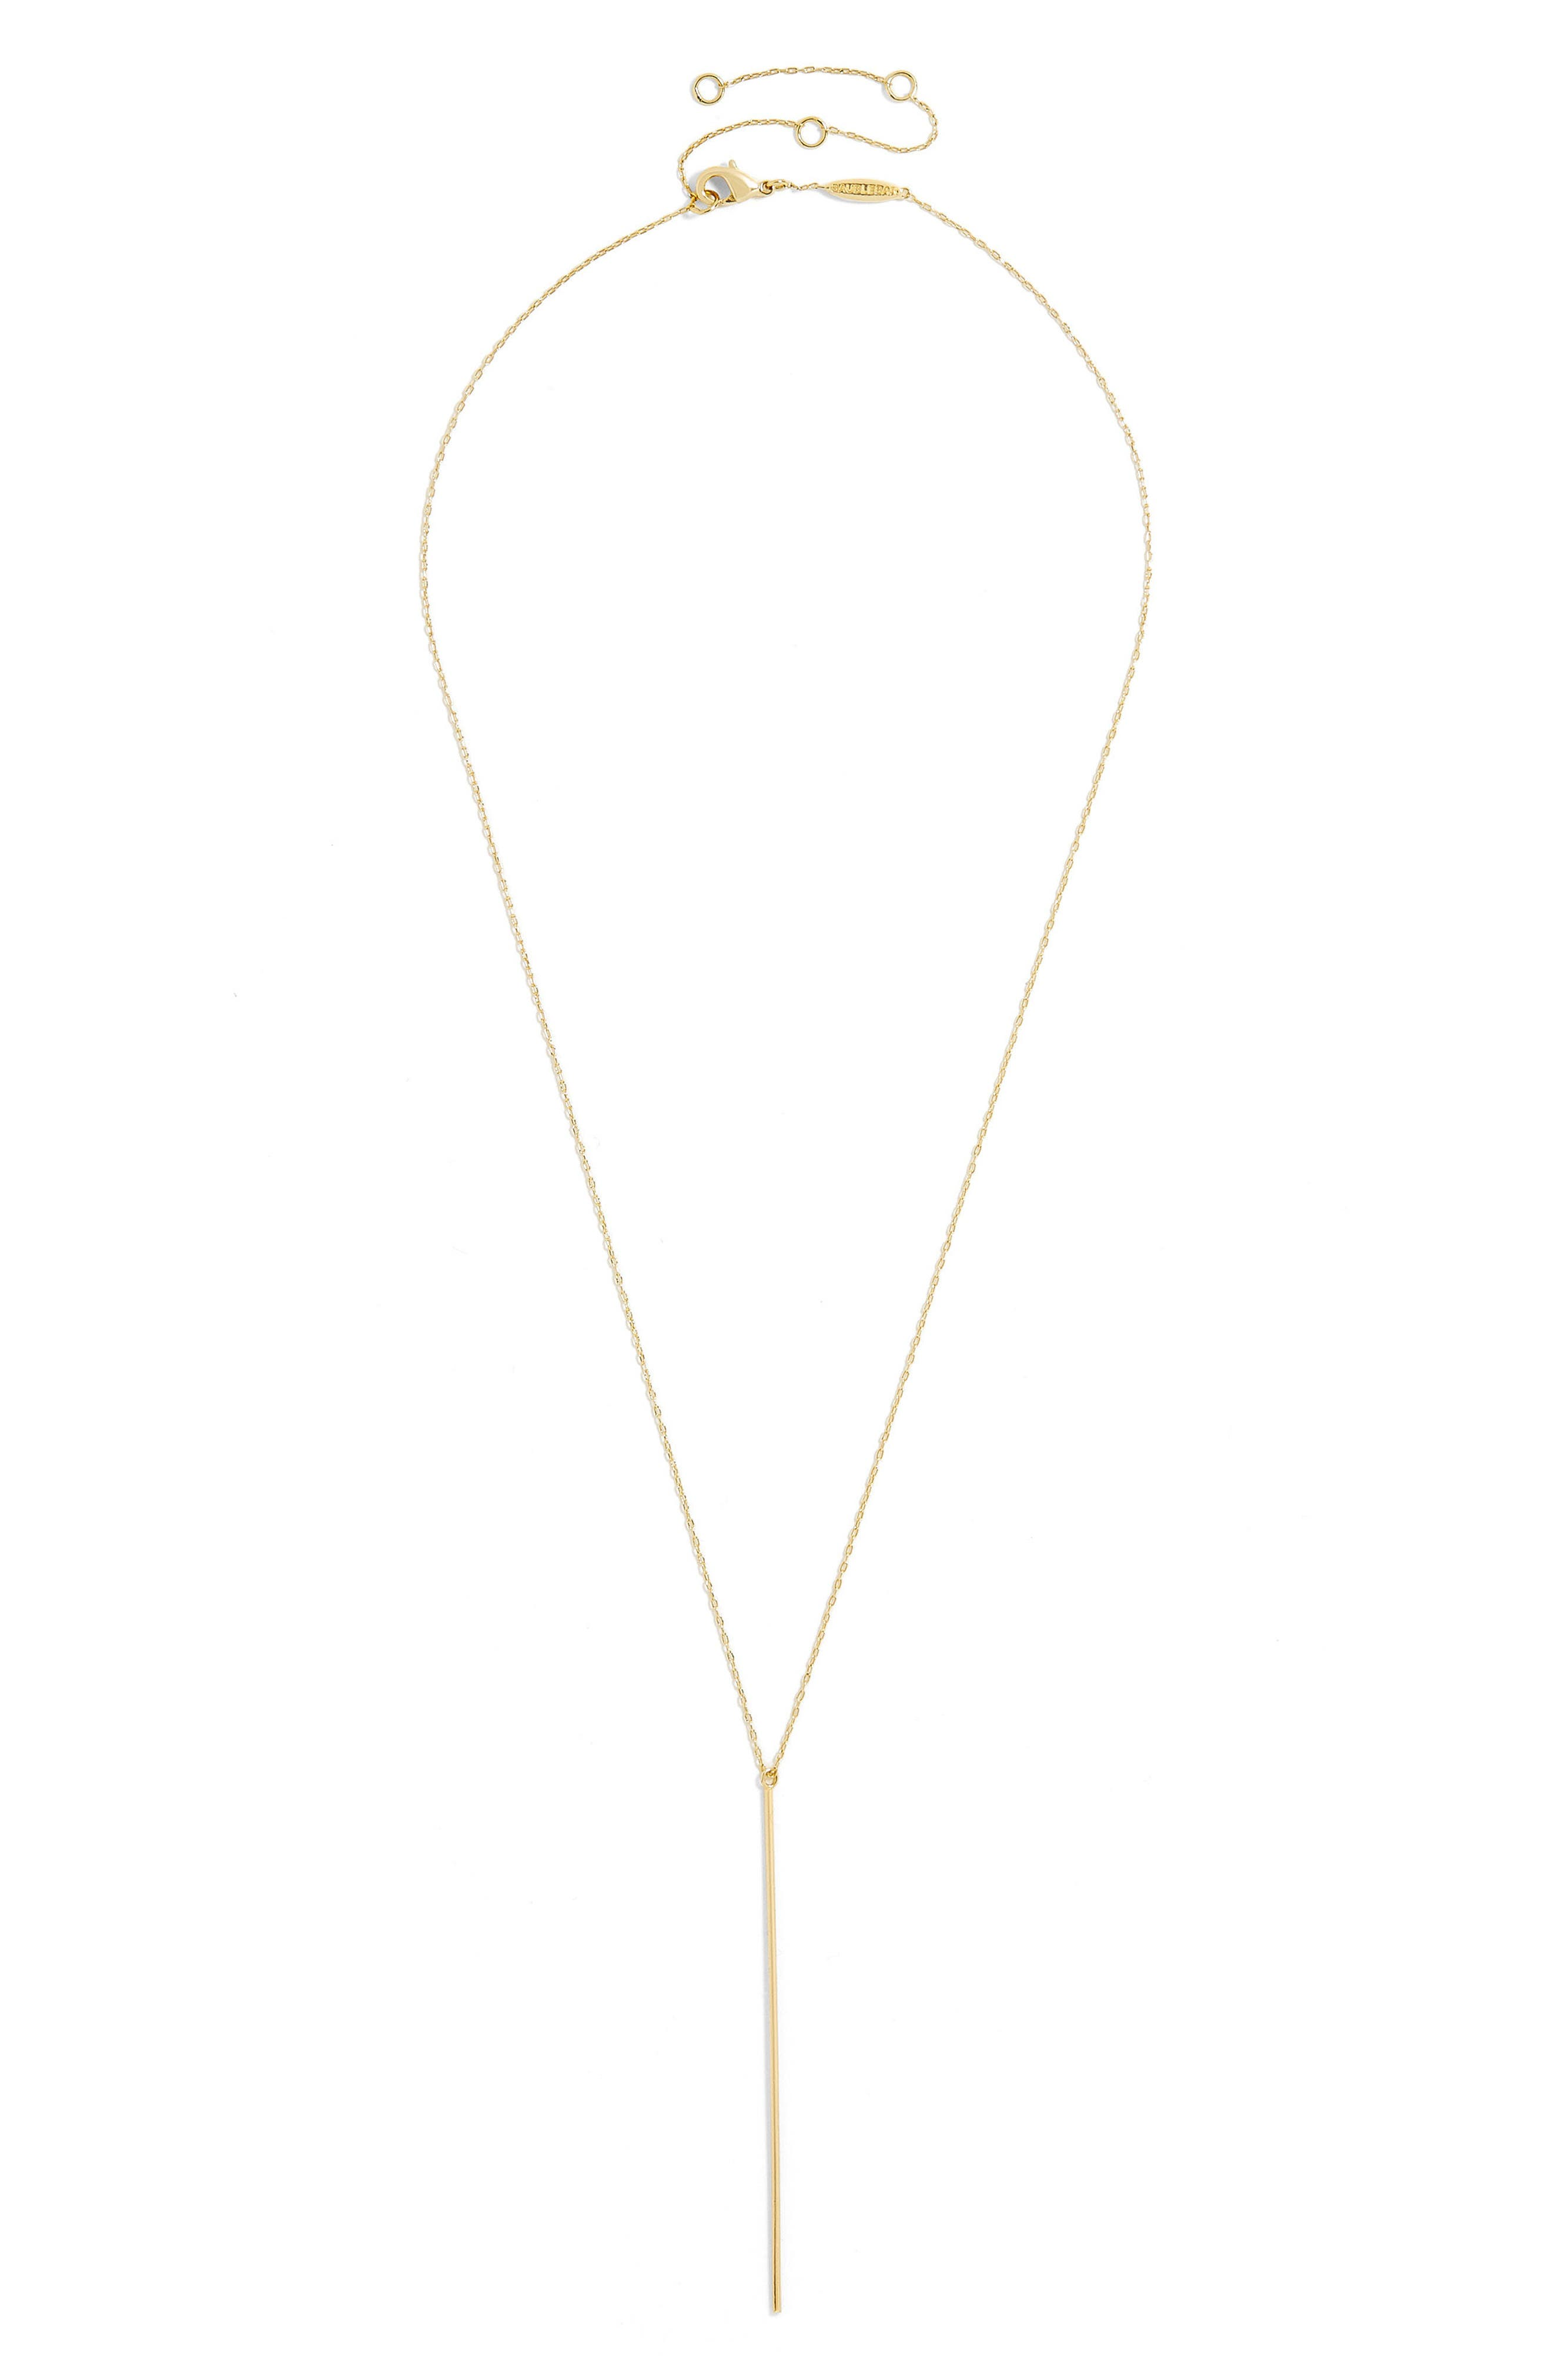 Mara Everyday Fine Layered Necklace,                             Main thumbnail 1, color,                             Gold